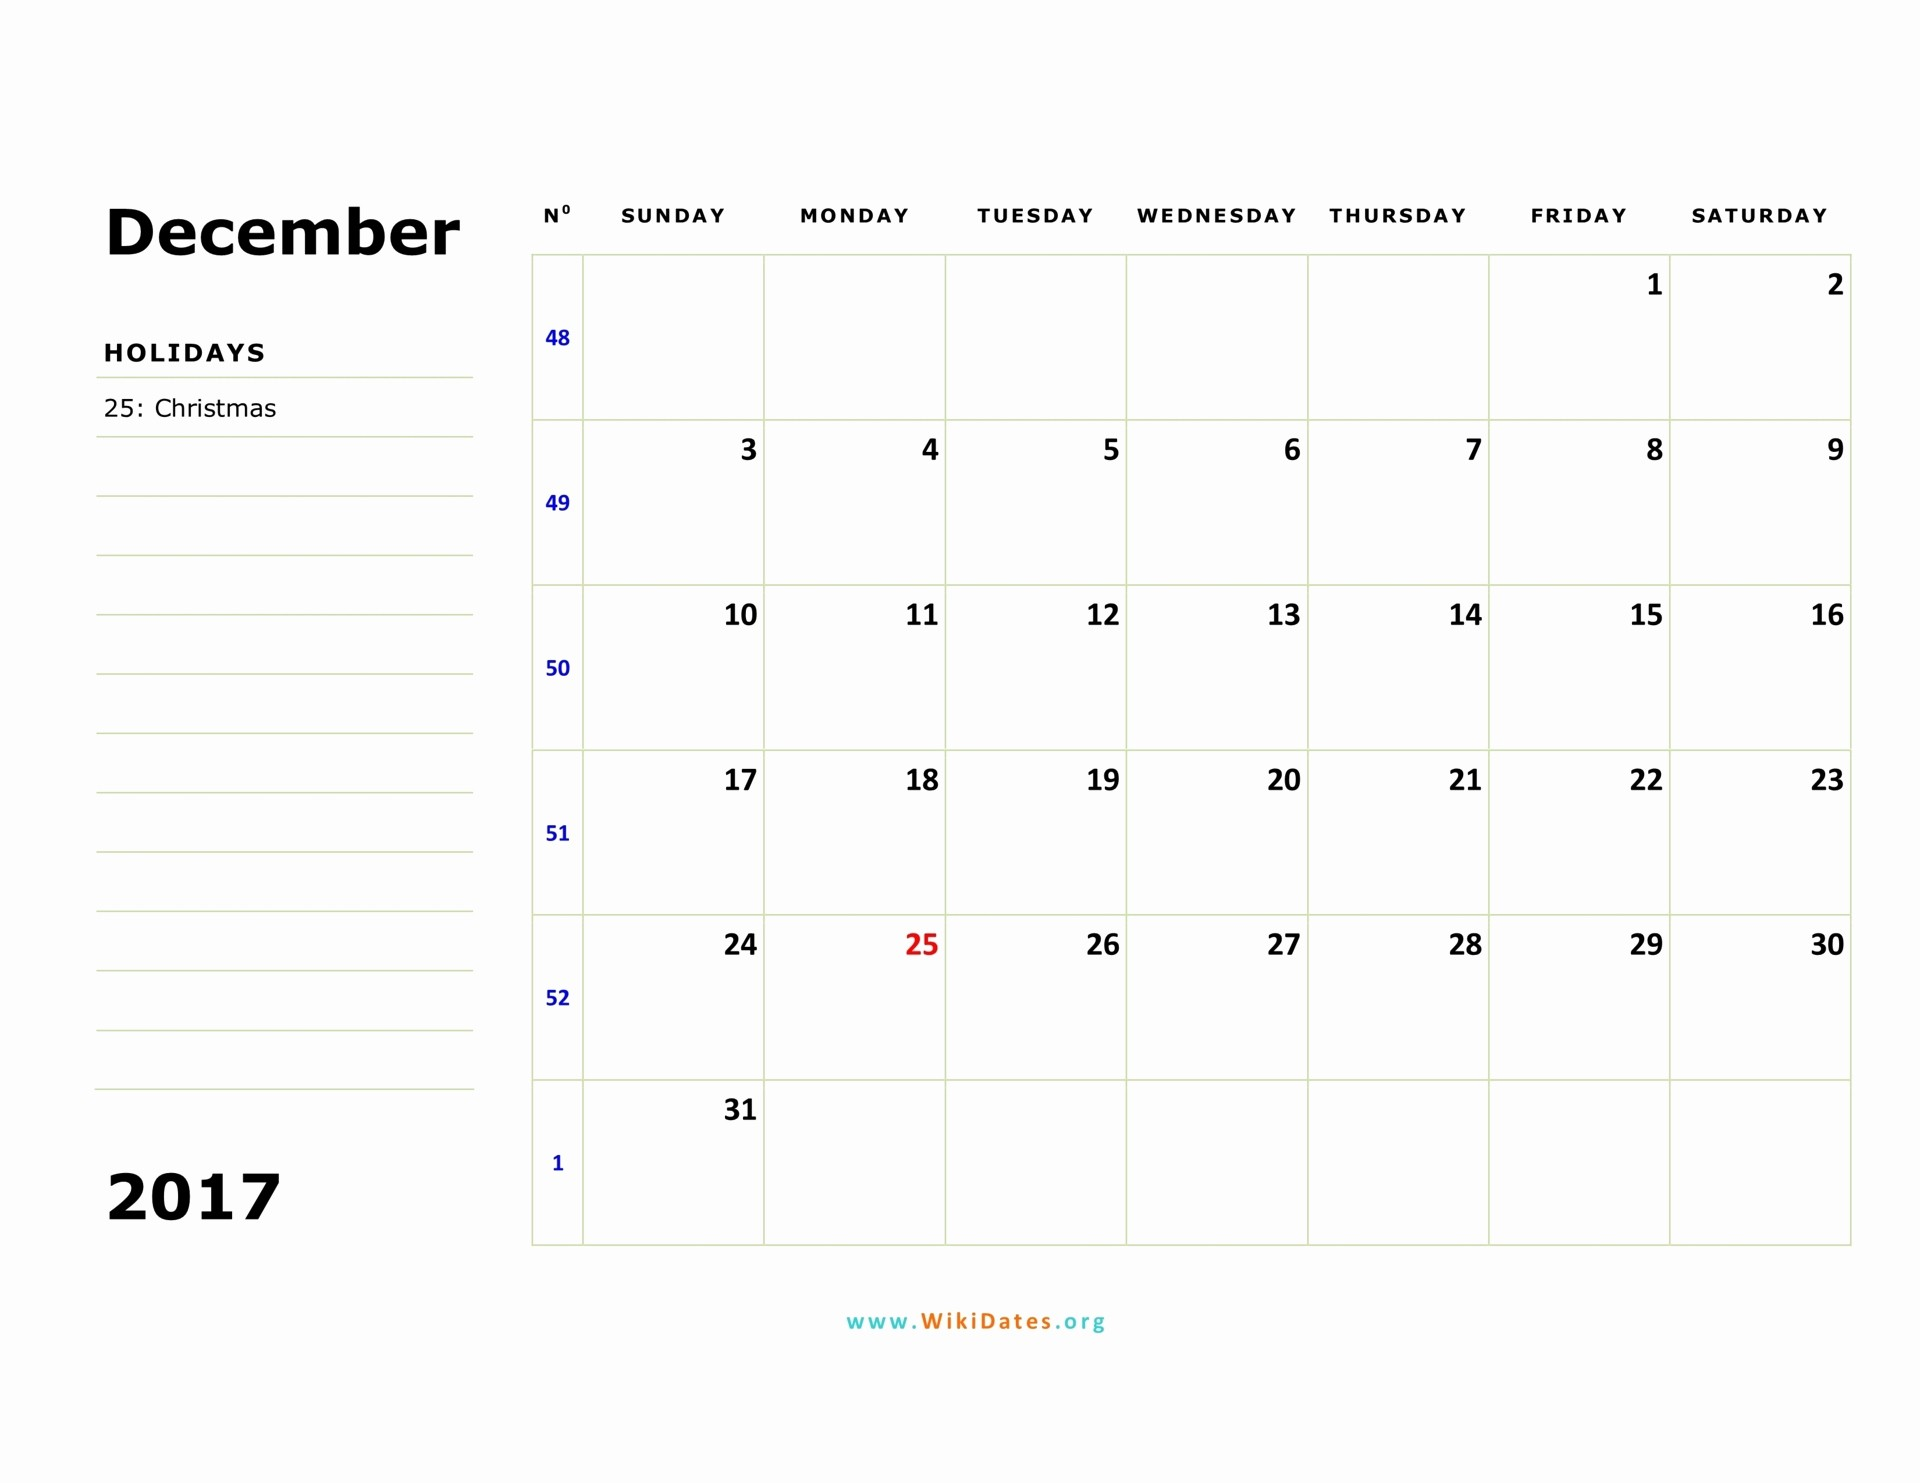 Calendar 2017 Monday to Sunday Inspirational December 2017 Calendar